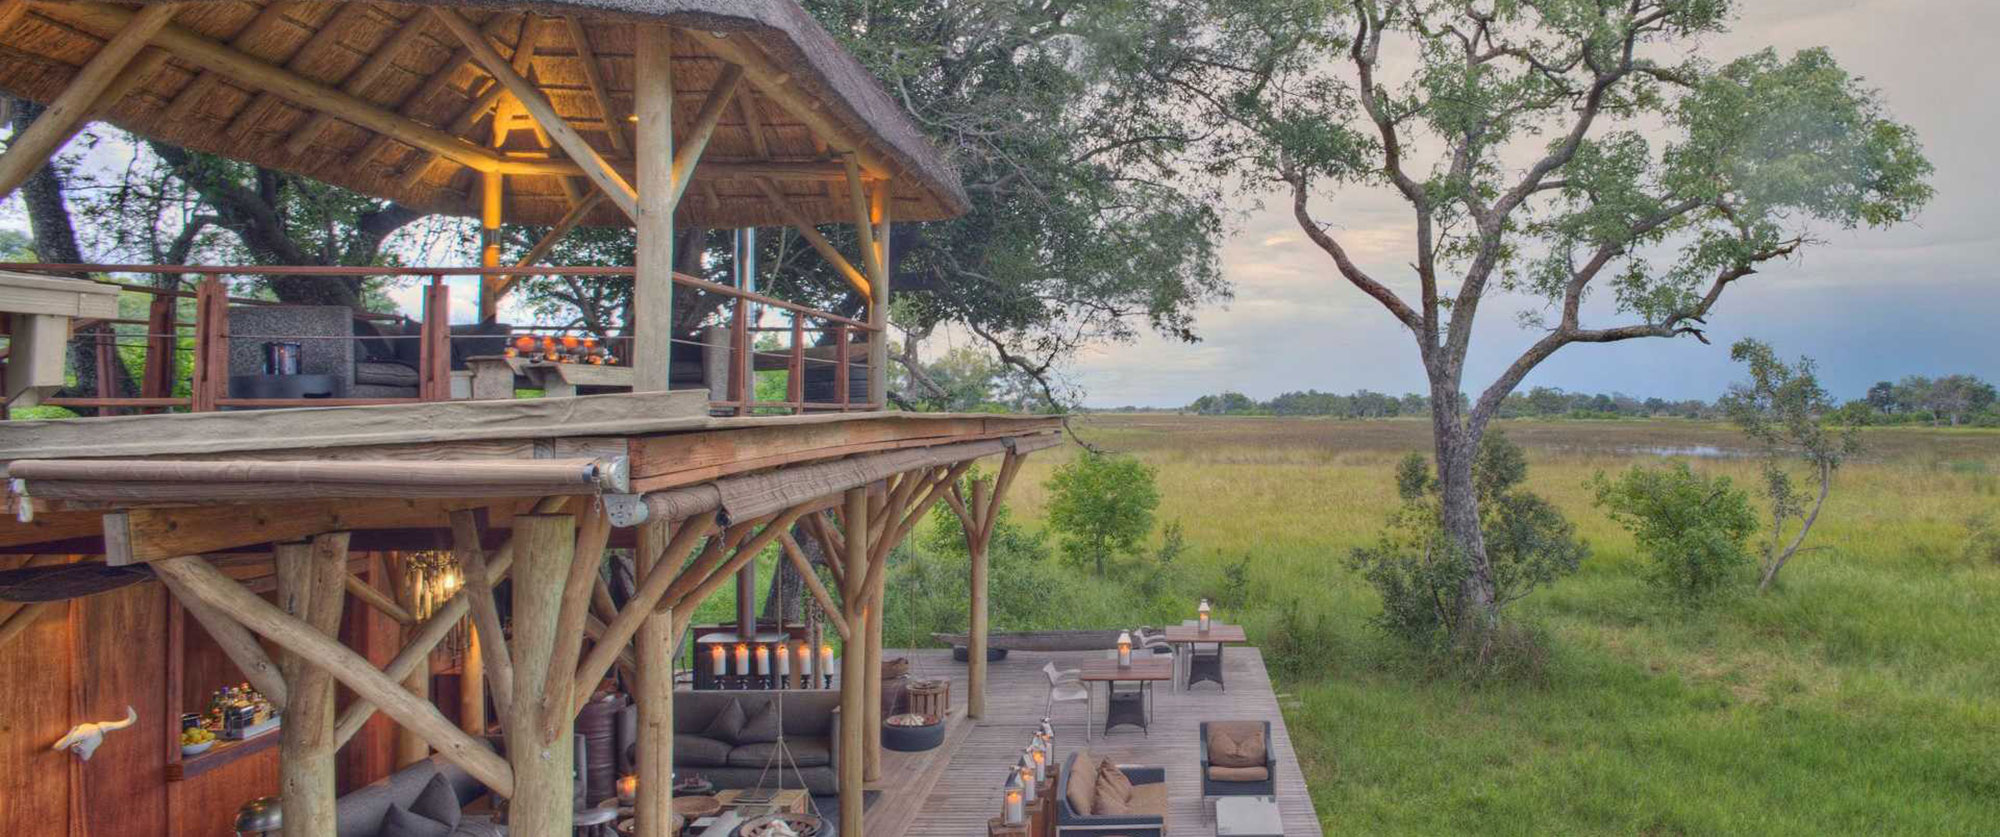 &Beyond Xudum Okavango Delta Lodge - Luxury African Safari